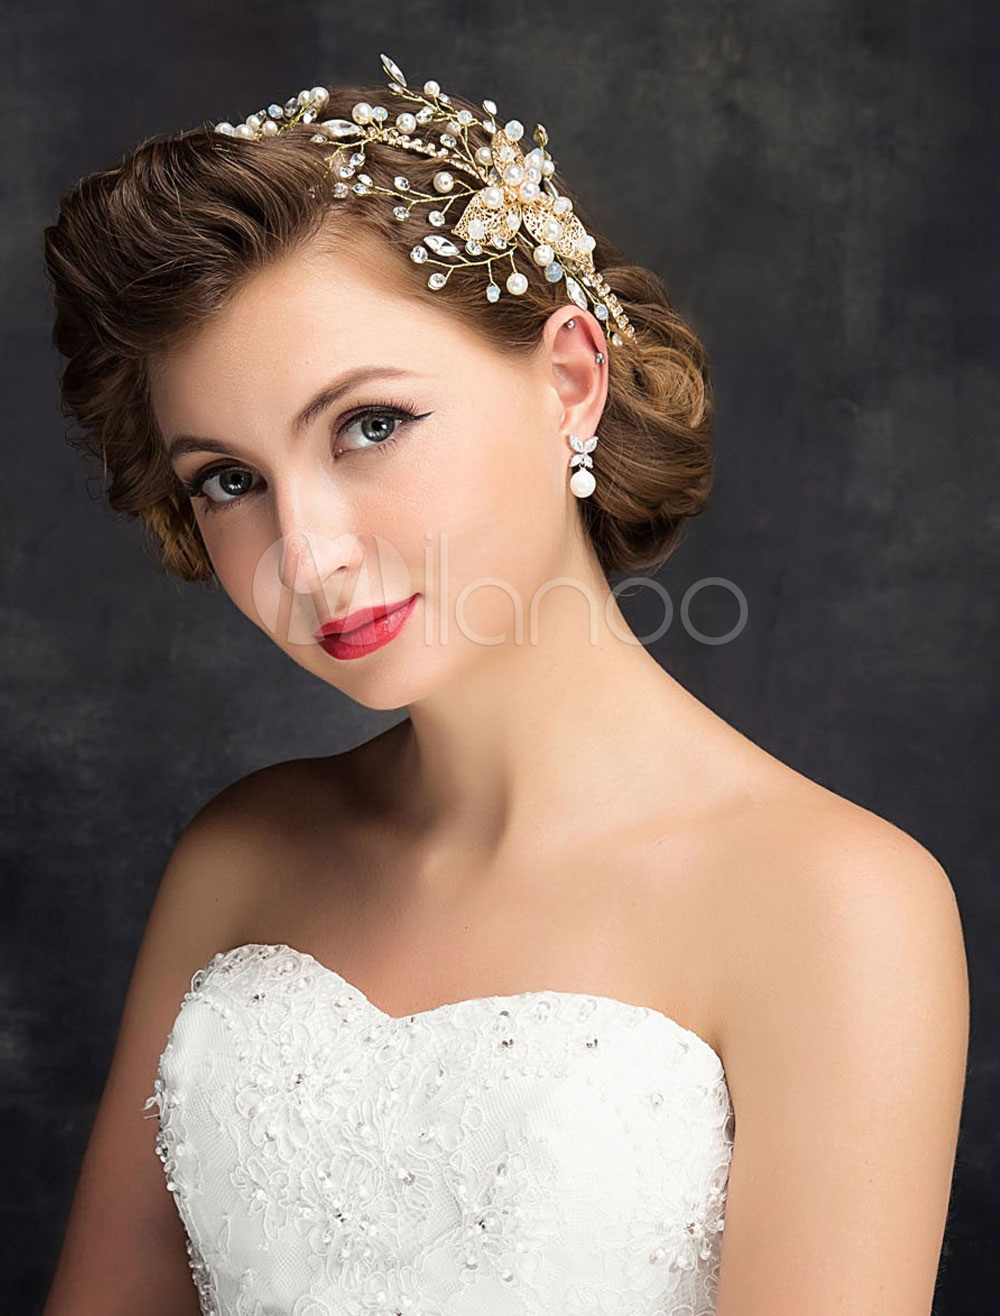 Buy Gold Wedding Headpieces Rhinestones Pearls Alloy Bridal Hair Accessories for $15.99 in Milanoo store